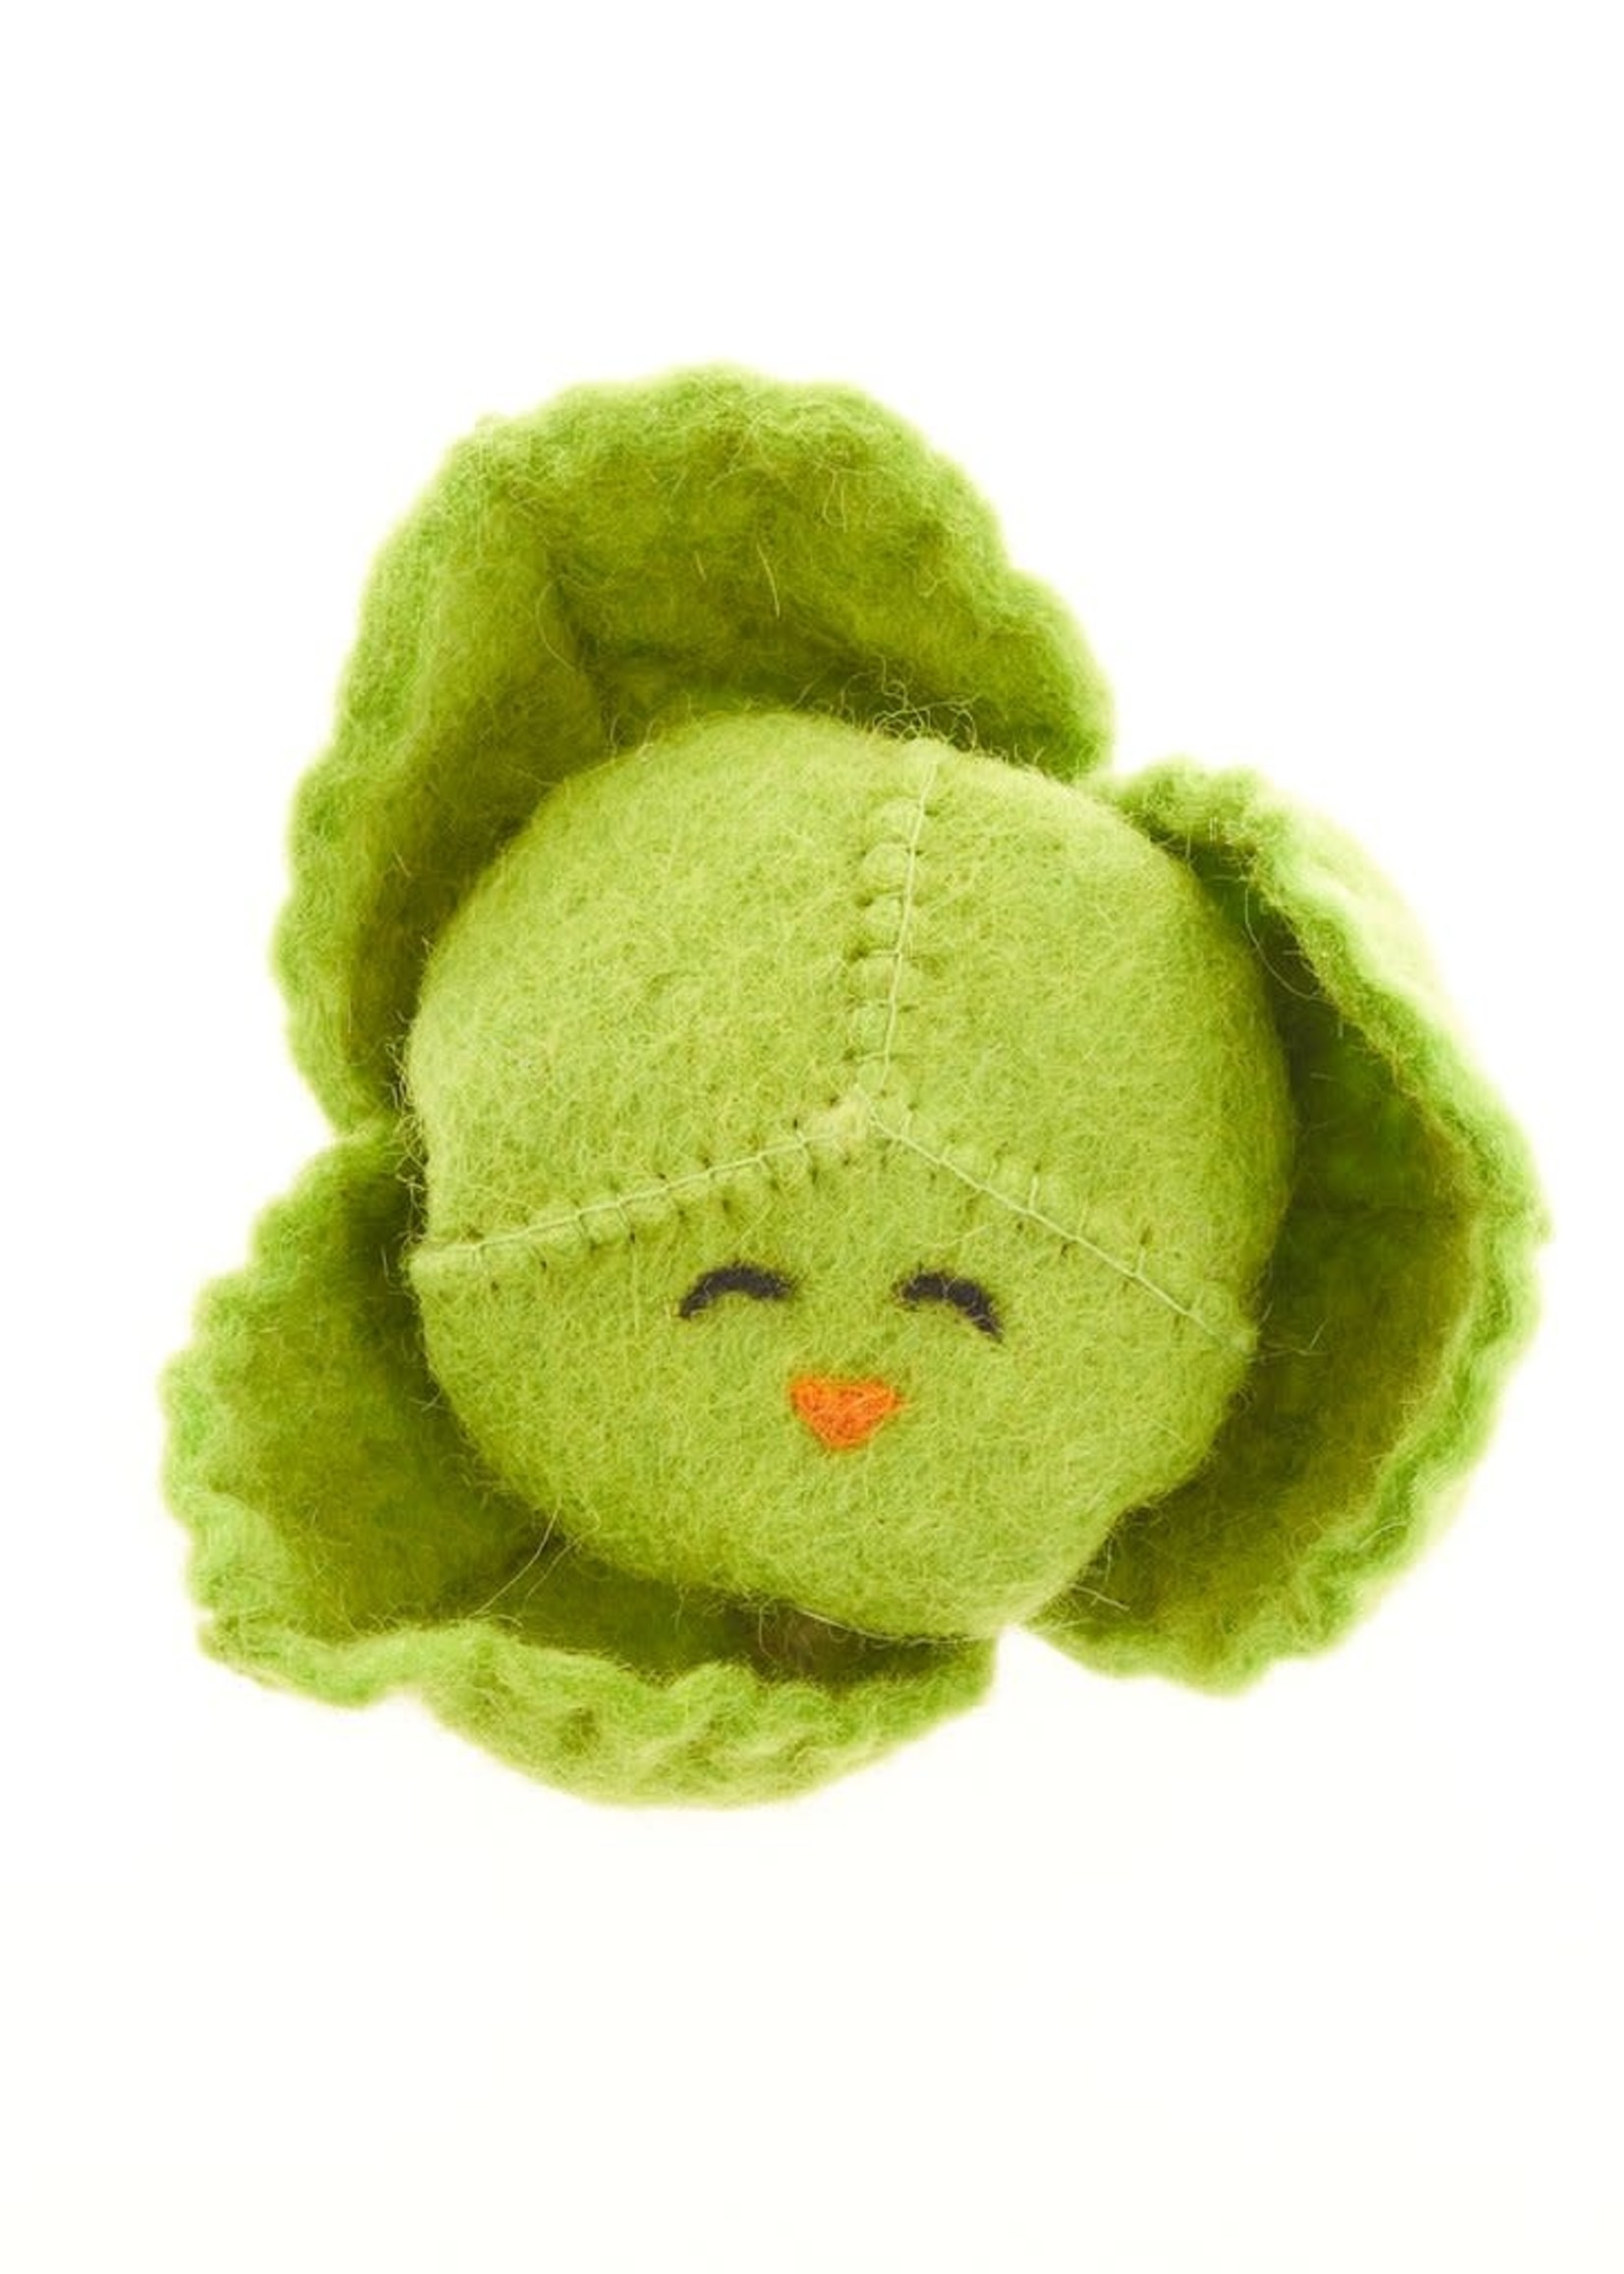 Global Goods Partners Felt Lettuce Toy